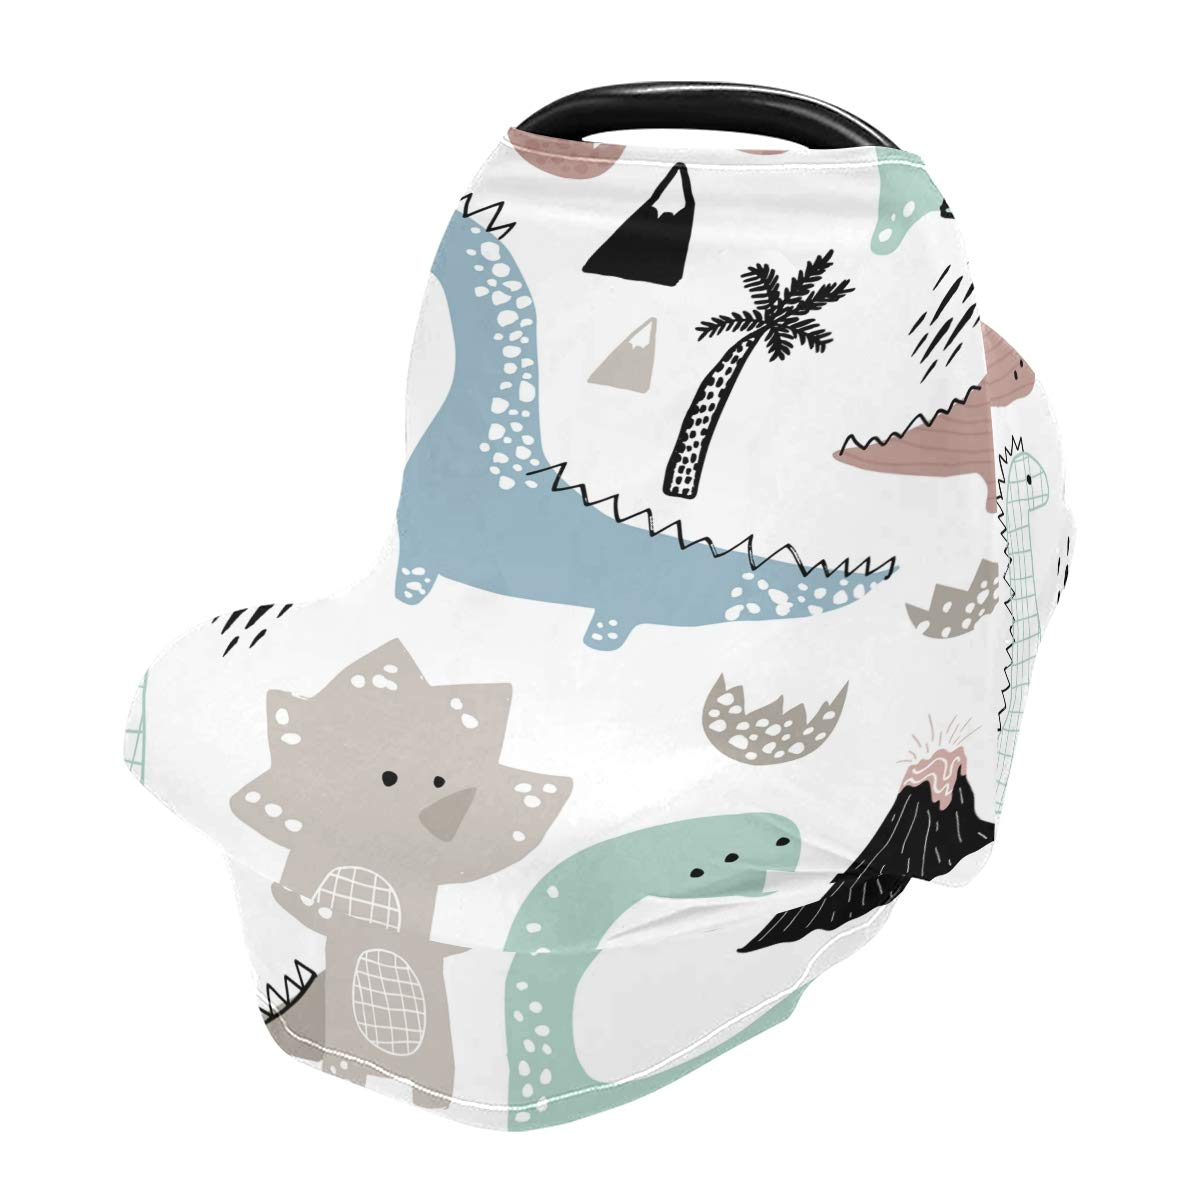 Nursing Cover Dinosaur Breastfeeding Soft Carseat Canopy Multi Use for Baby Car Seat Covers Canopy Shopping Cart Cover Scarf Light Blanket Stroller Cover